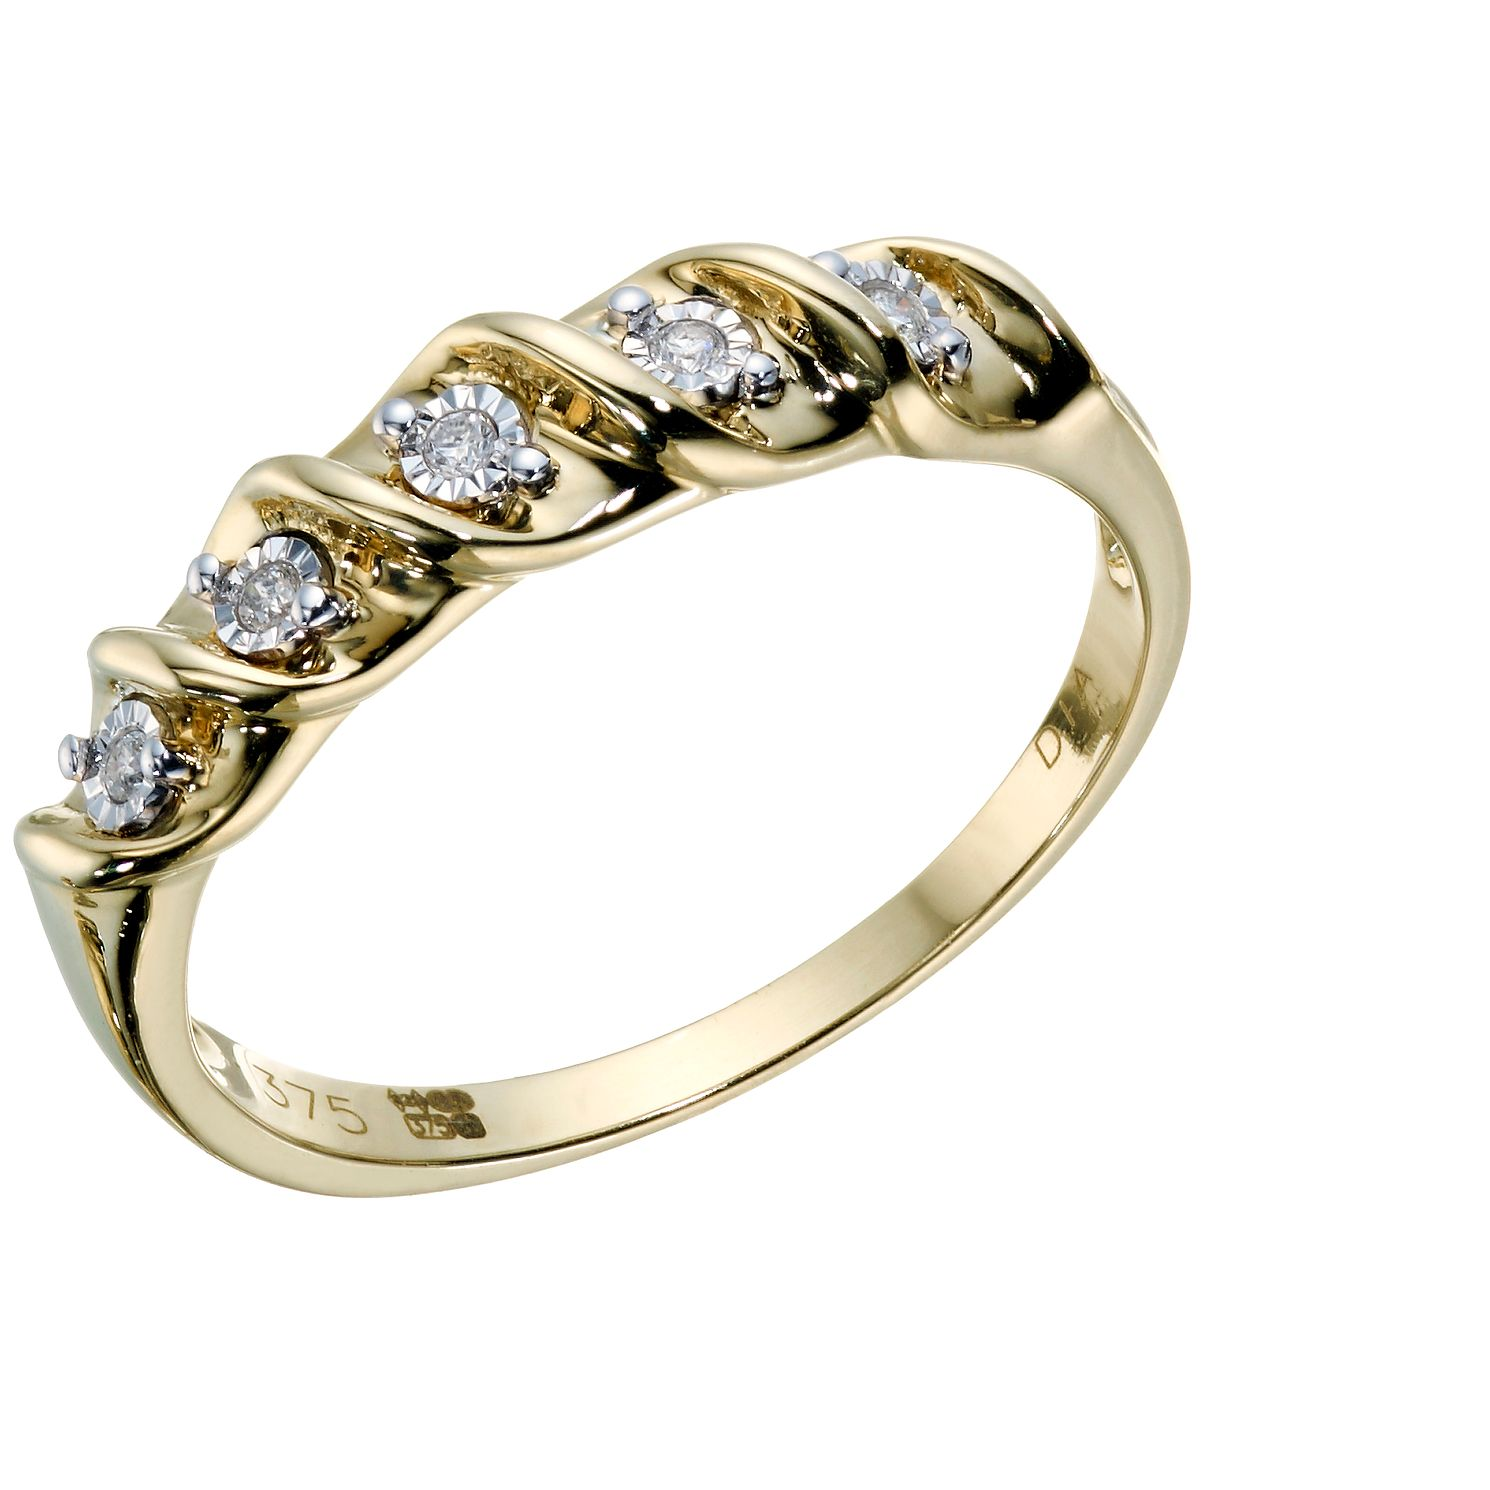 diamond pave carat eternity rings ladies facets bands fine style white grams jewelers millimeters band carats gold